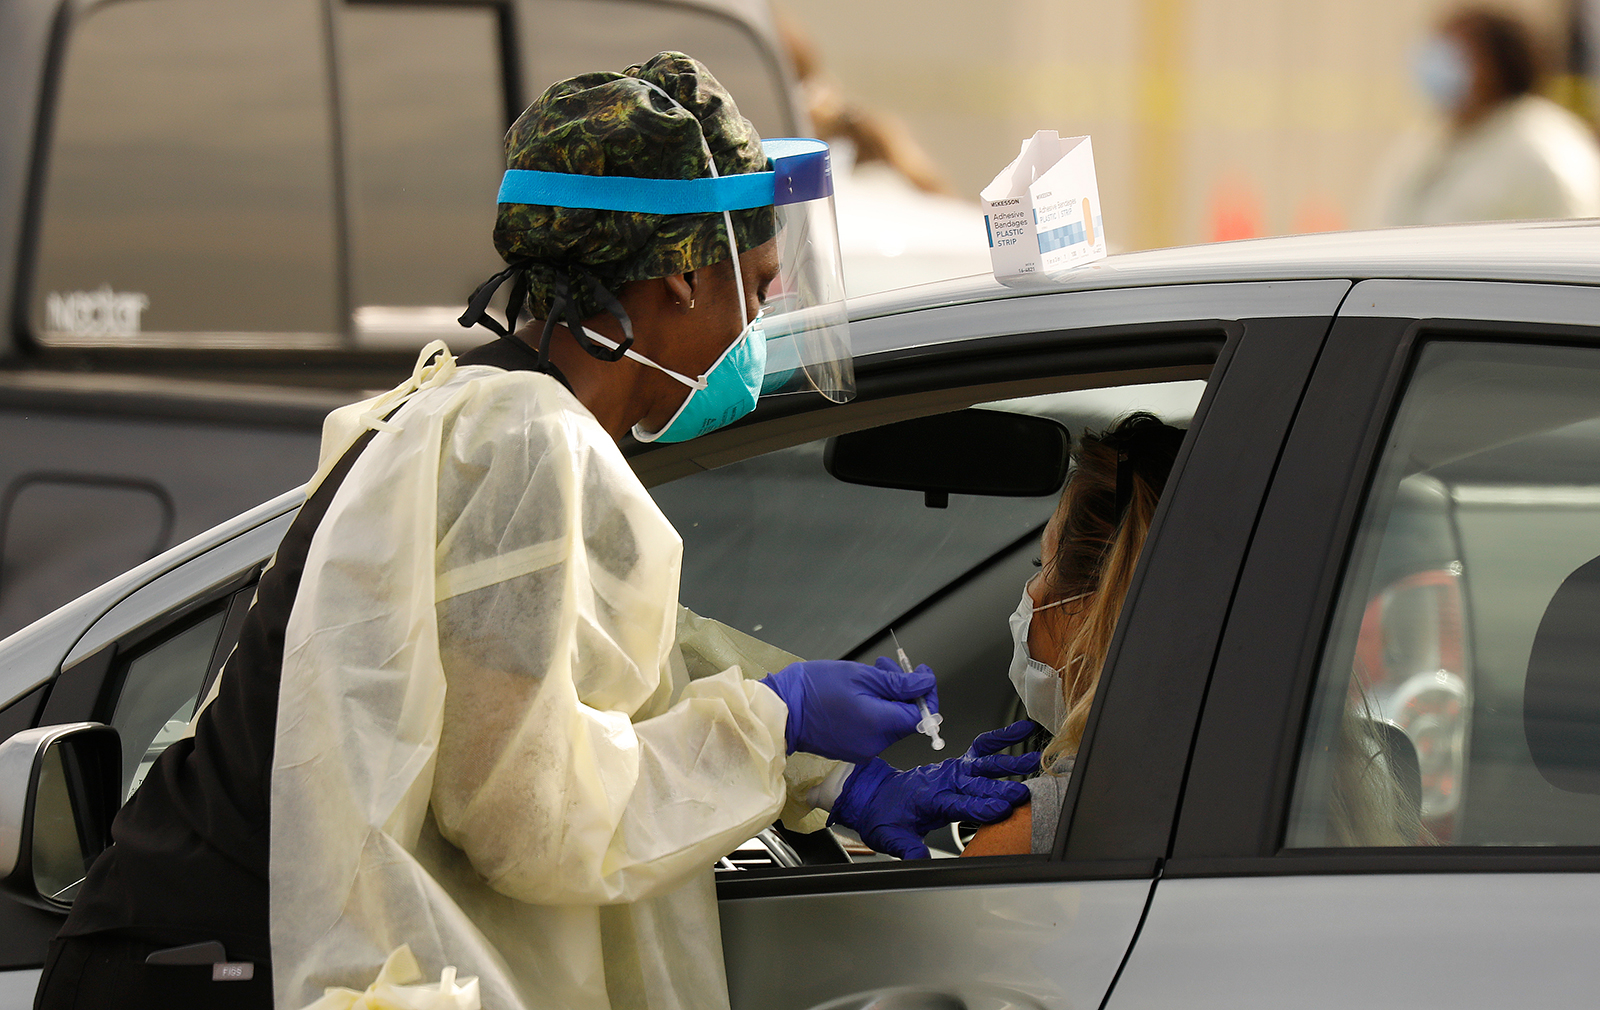 Staff and volunteers distribute the Covid-19 vaccine to people as they remain in their vehicles at The Forum in Inglewood, California, on, January 19.